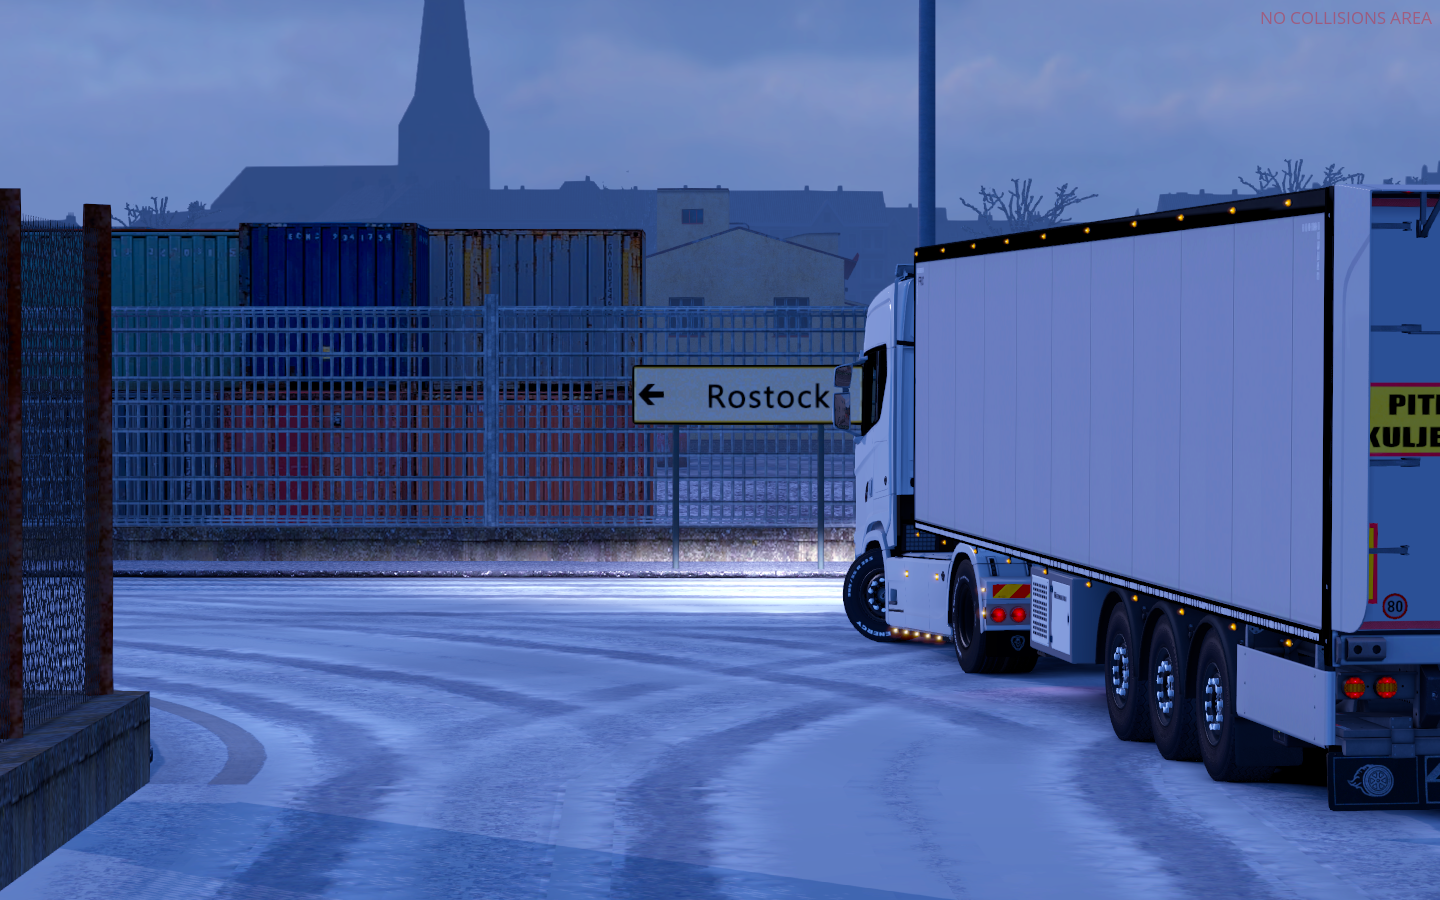 ets2_20190111_193612_00.png